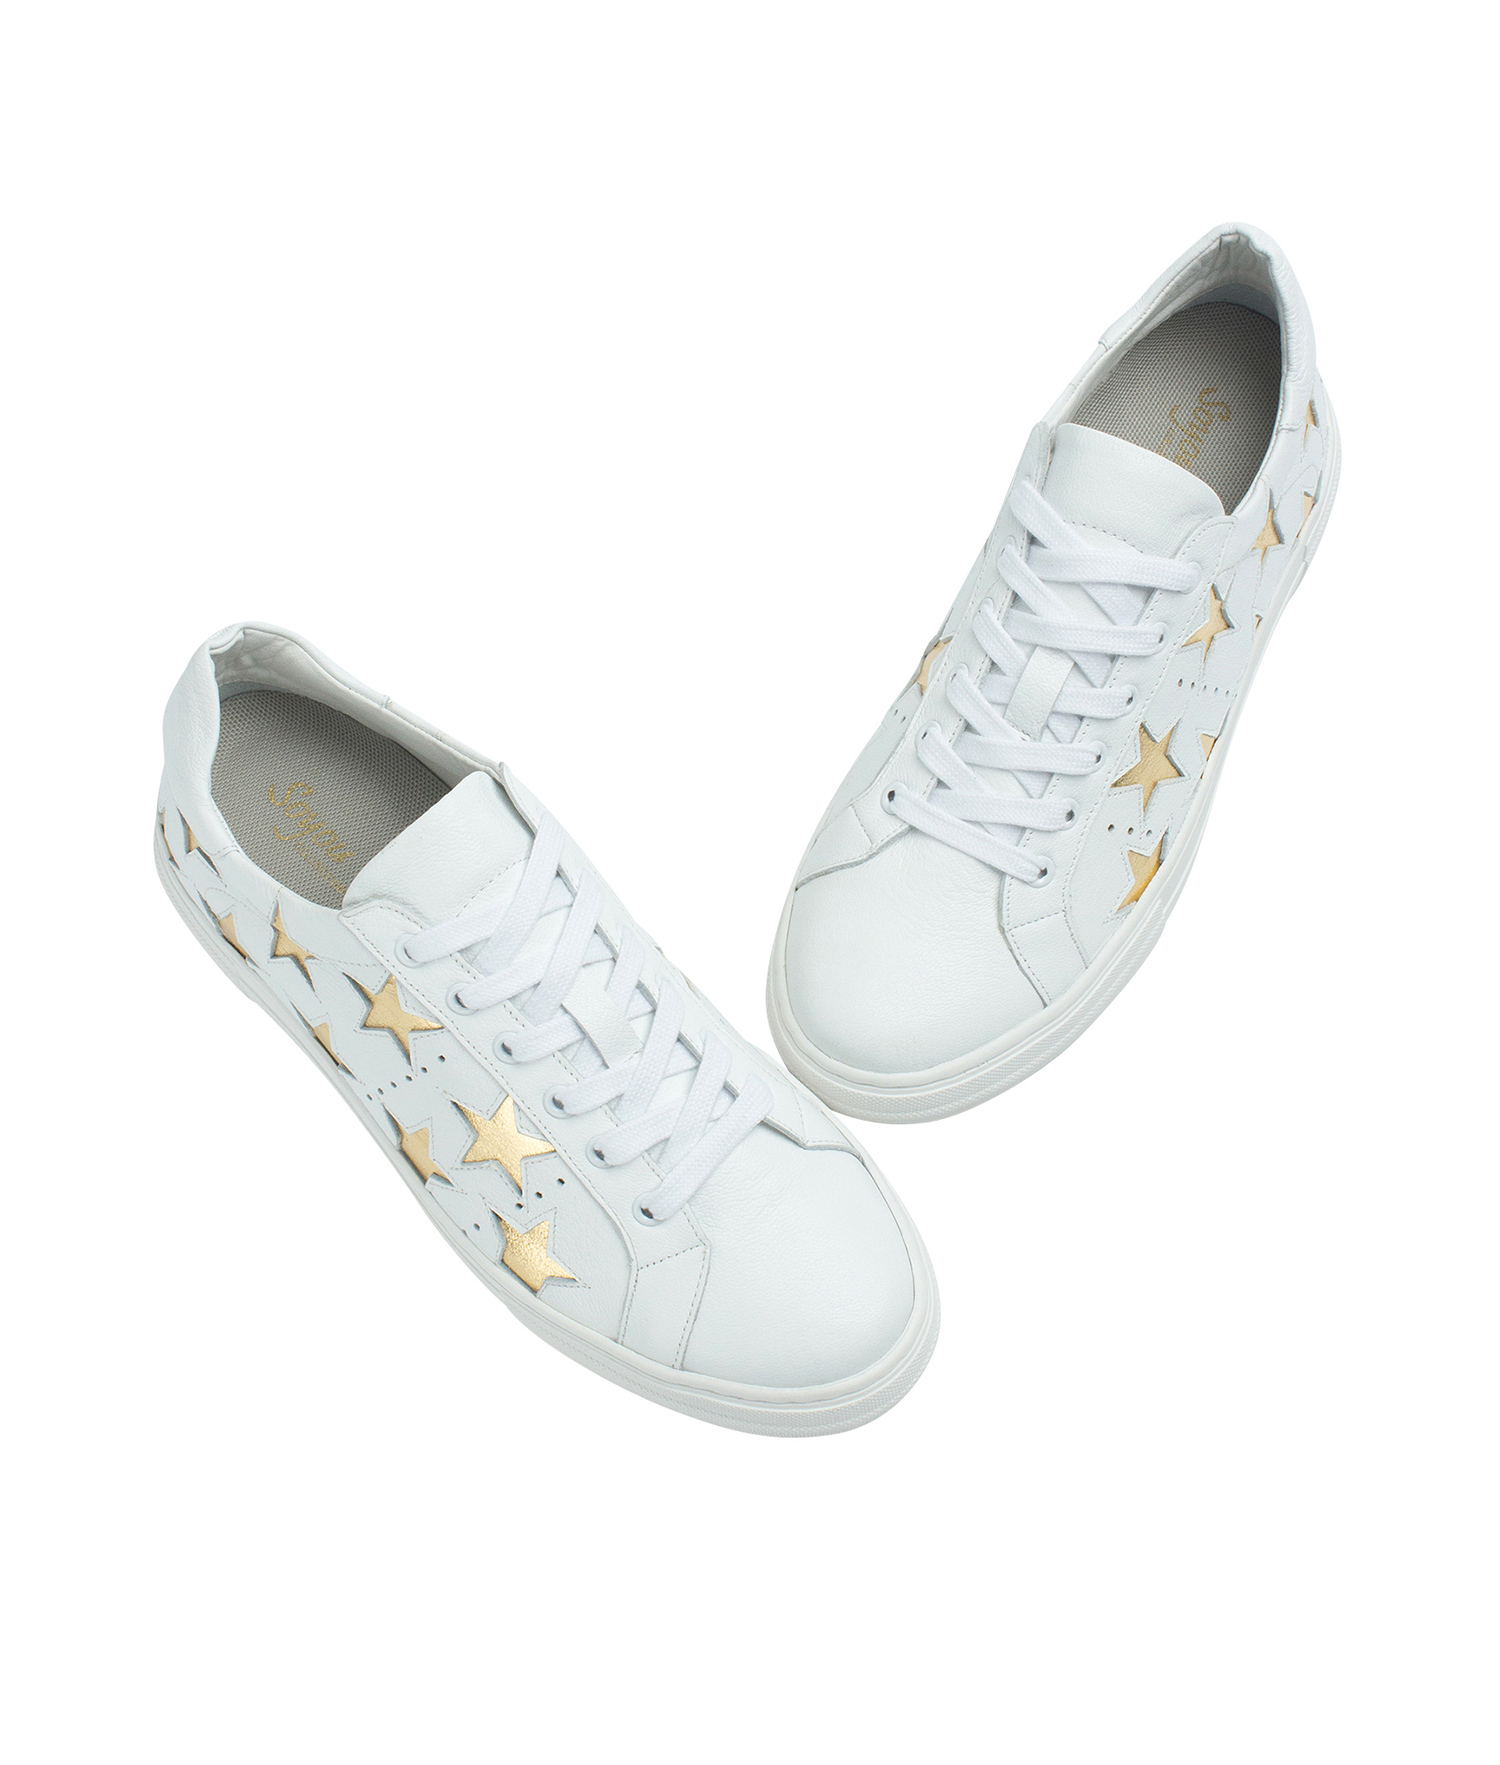 Star Cutout Sneakers - annakastleshoes.com